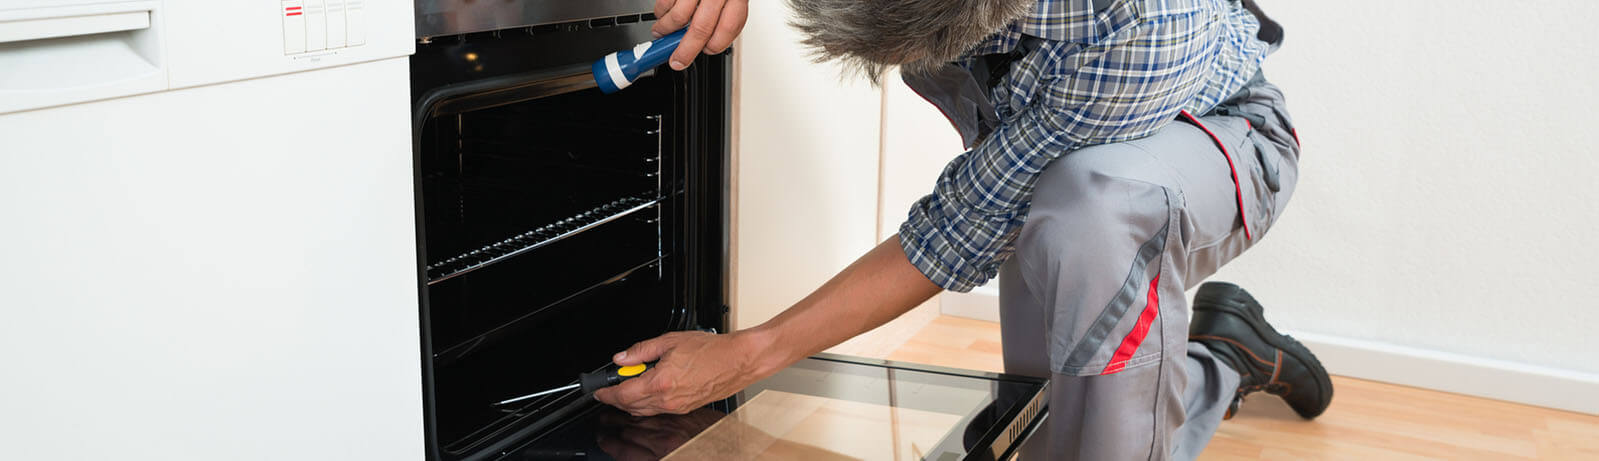 fixing perth home owner's ovens for 30 years